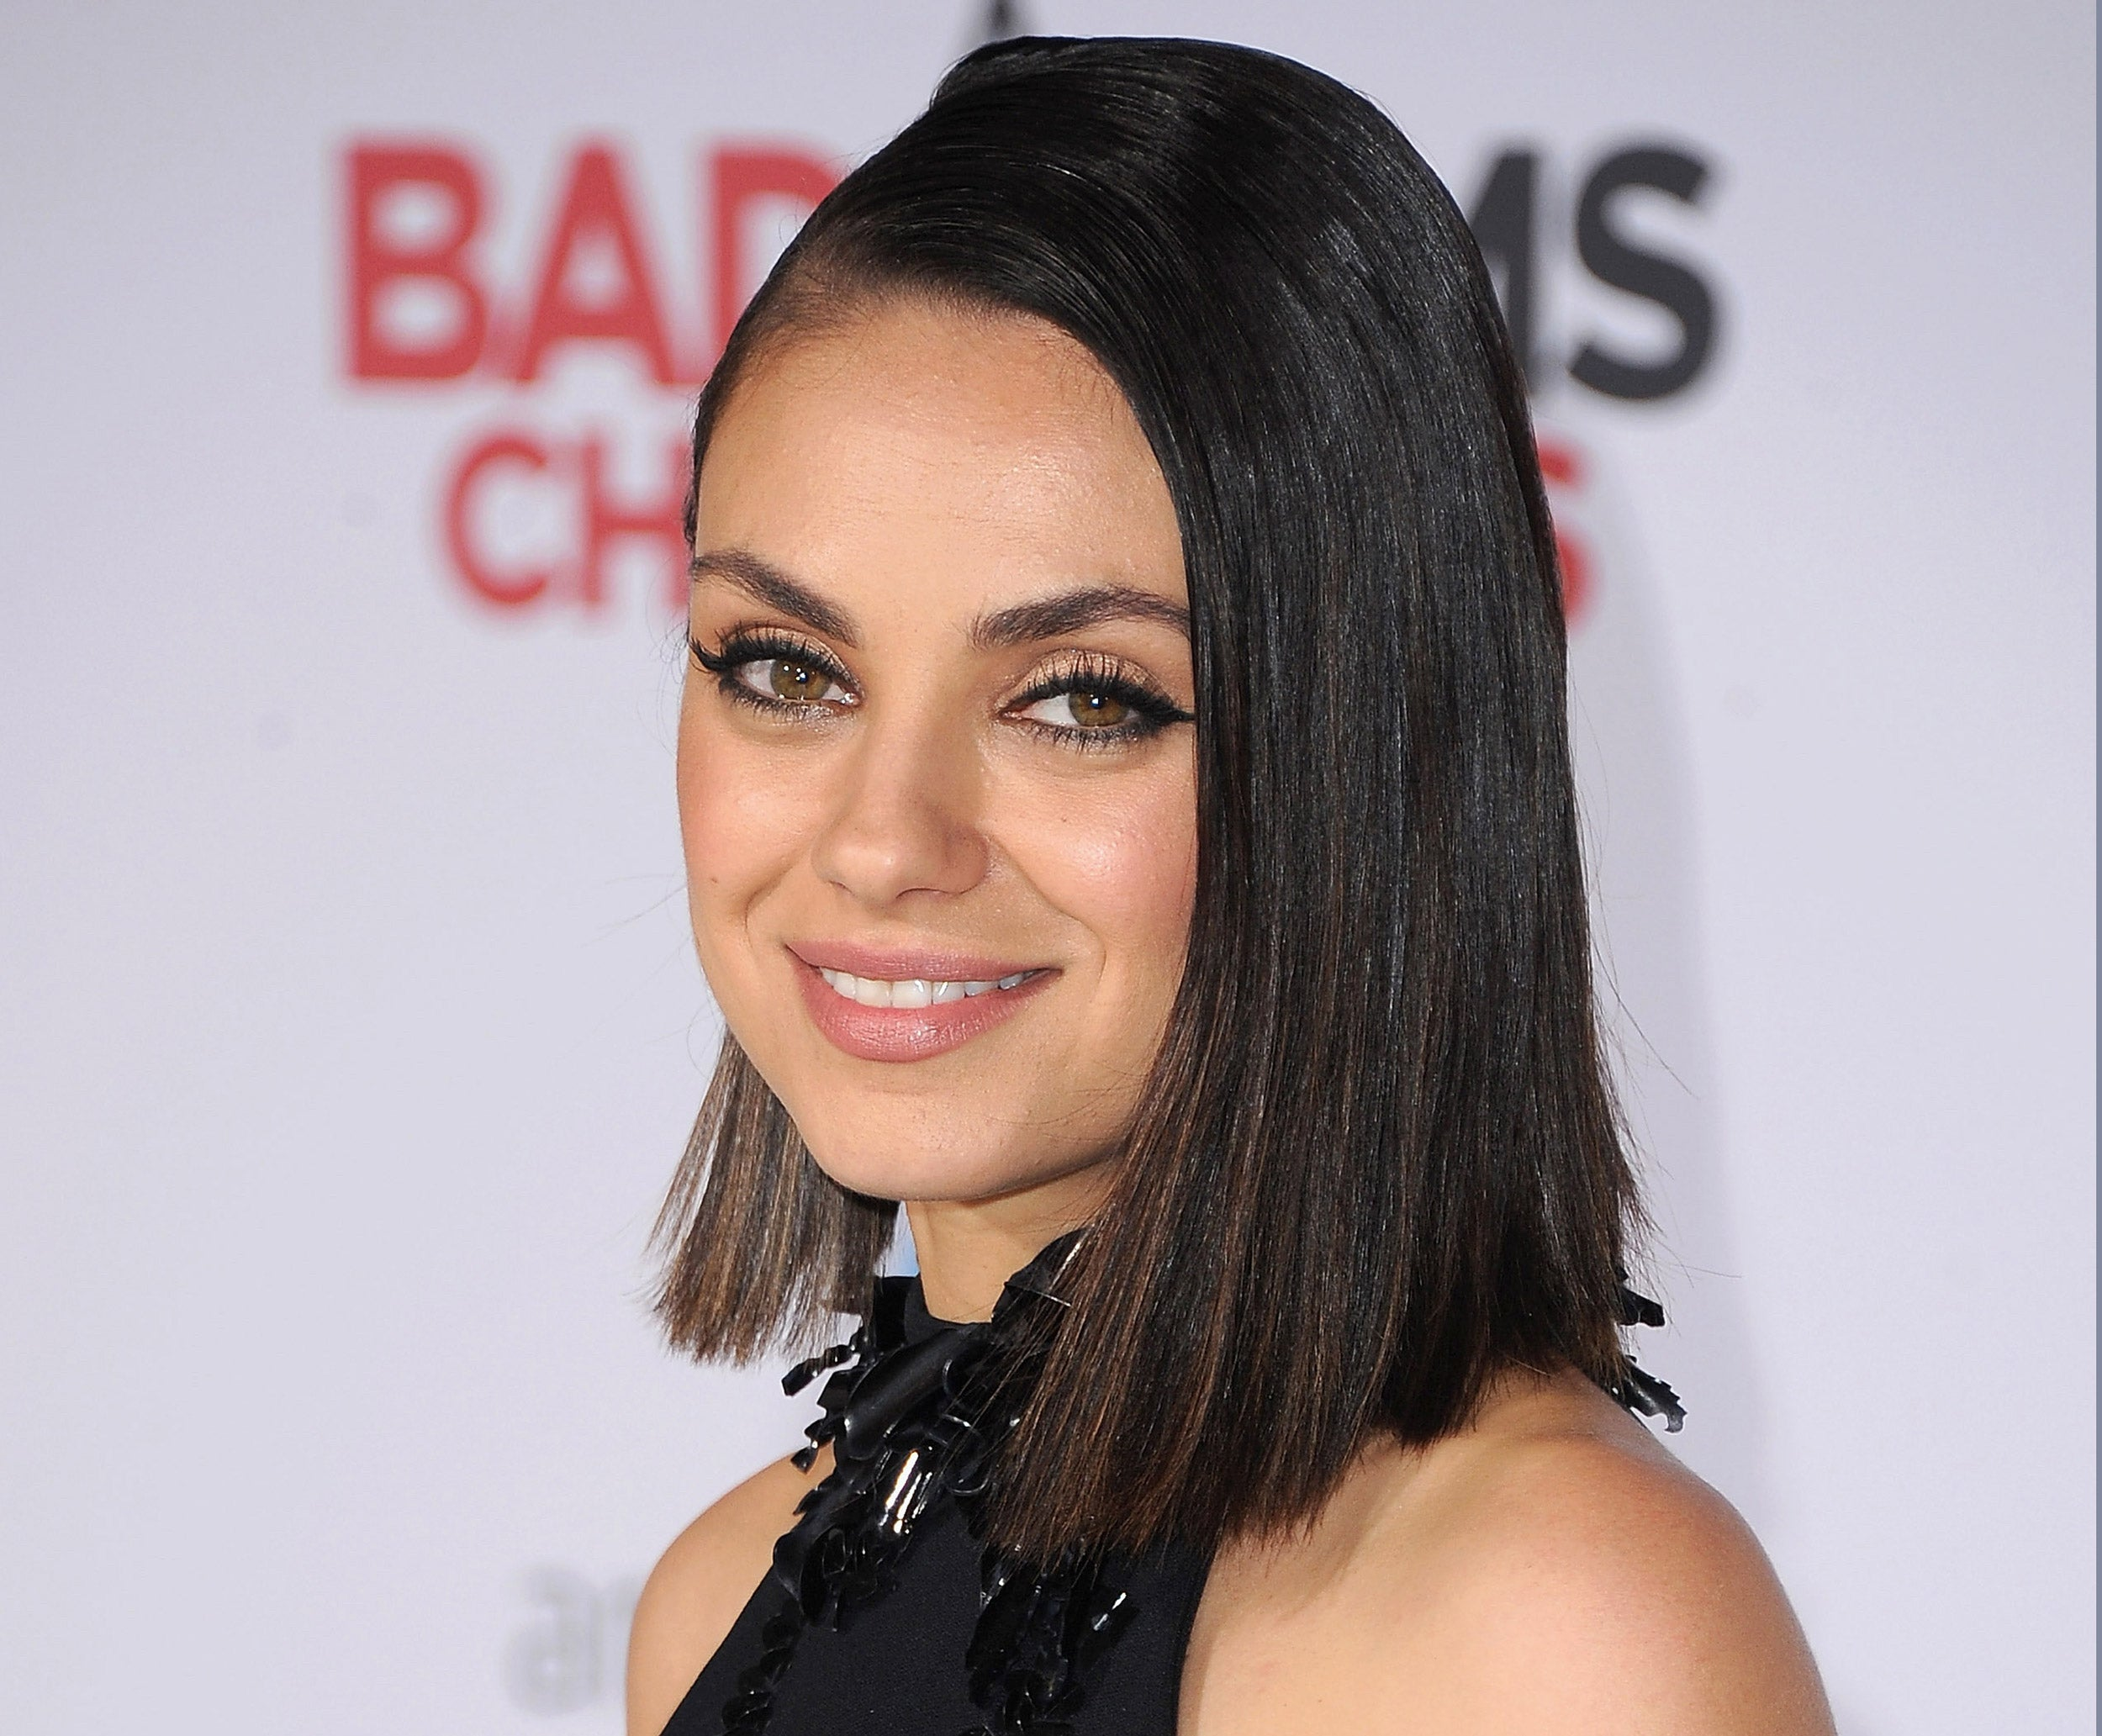 """Known for her roles in """"That '70s Show"""" and """"Black Swan,"""" Mila Kunis has been named Hasty Pudding's Woman of the Year. She will be honored on Jan. 25."""